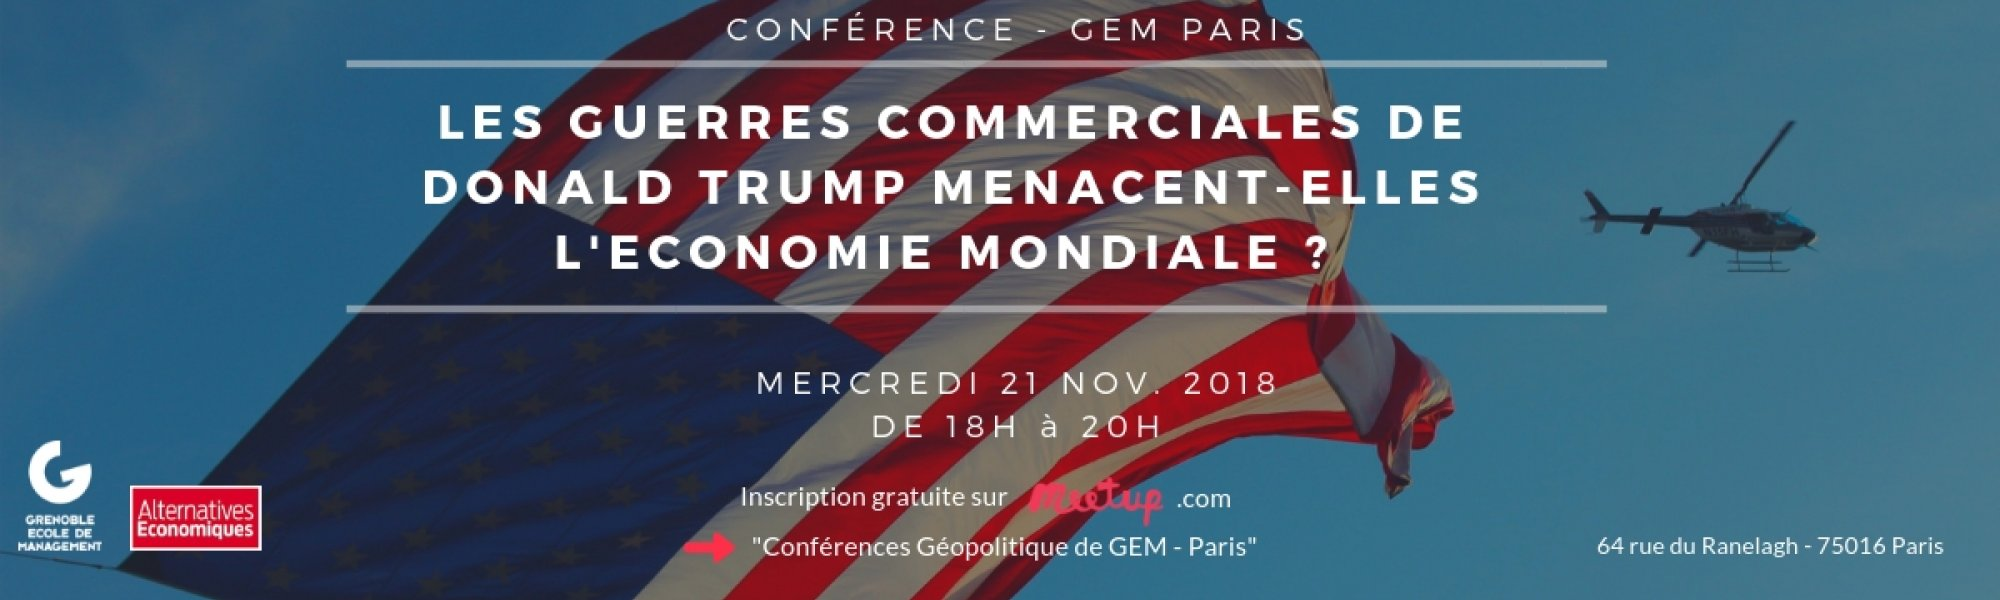 conference_gem_paris_trump_21nov18